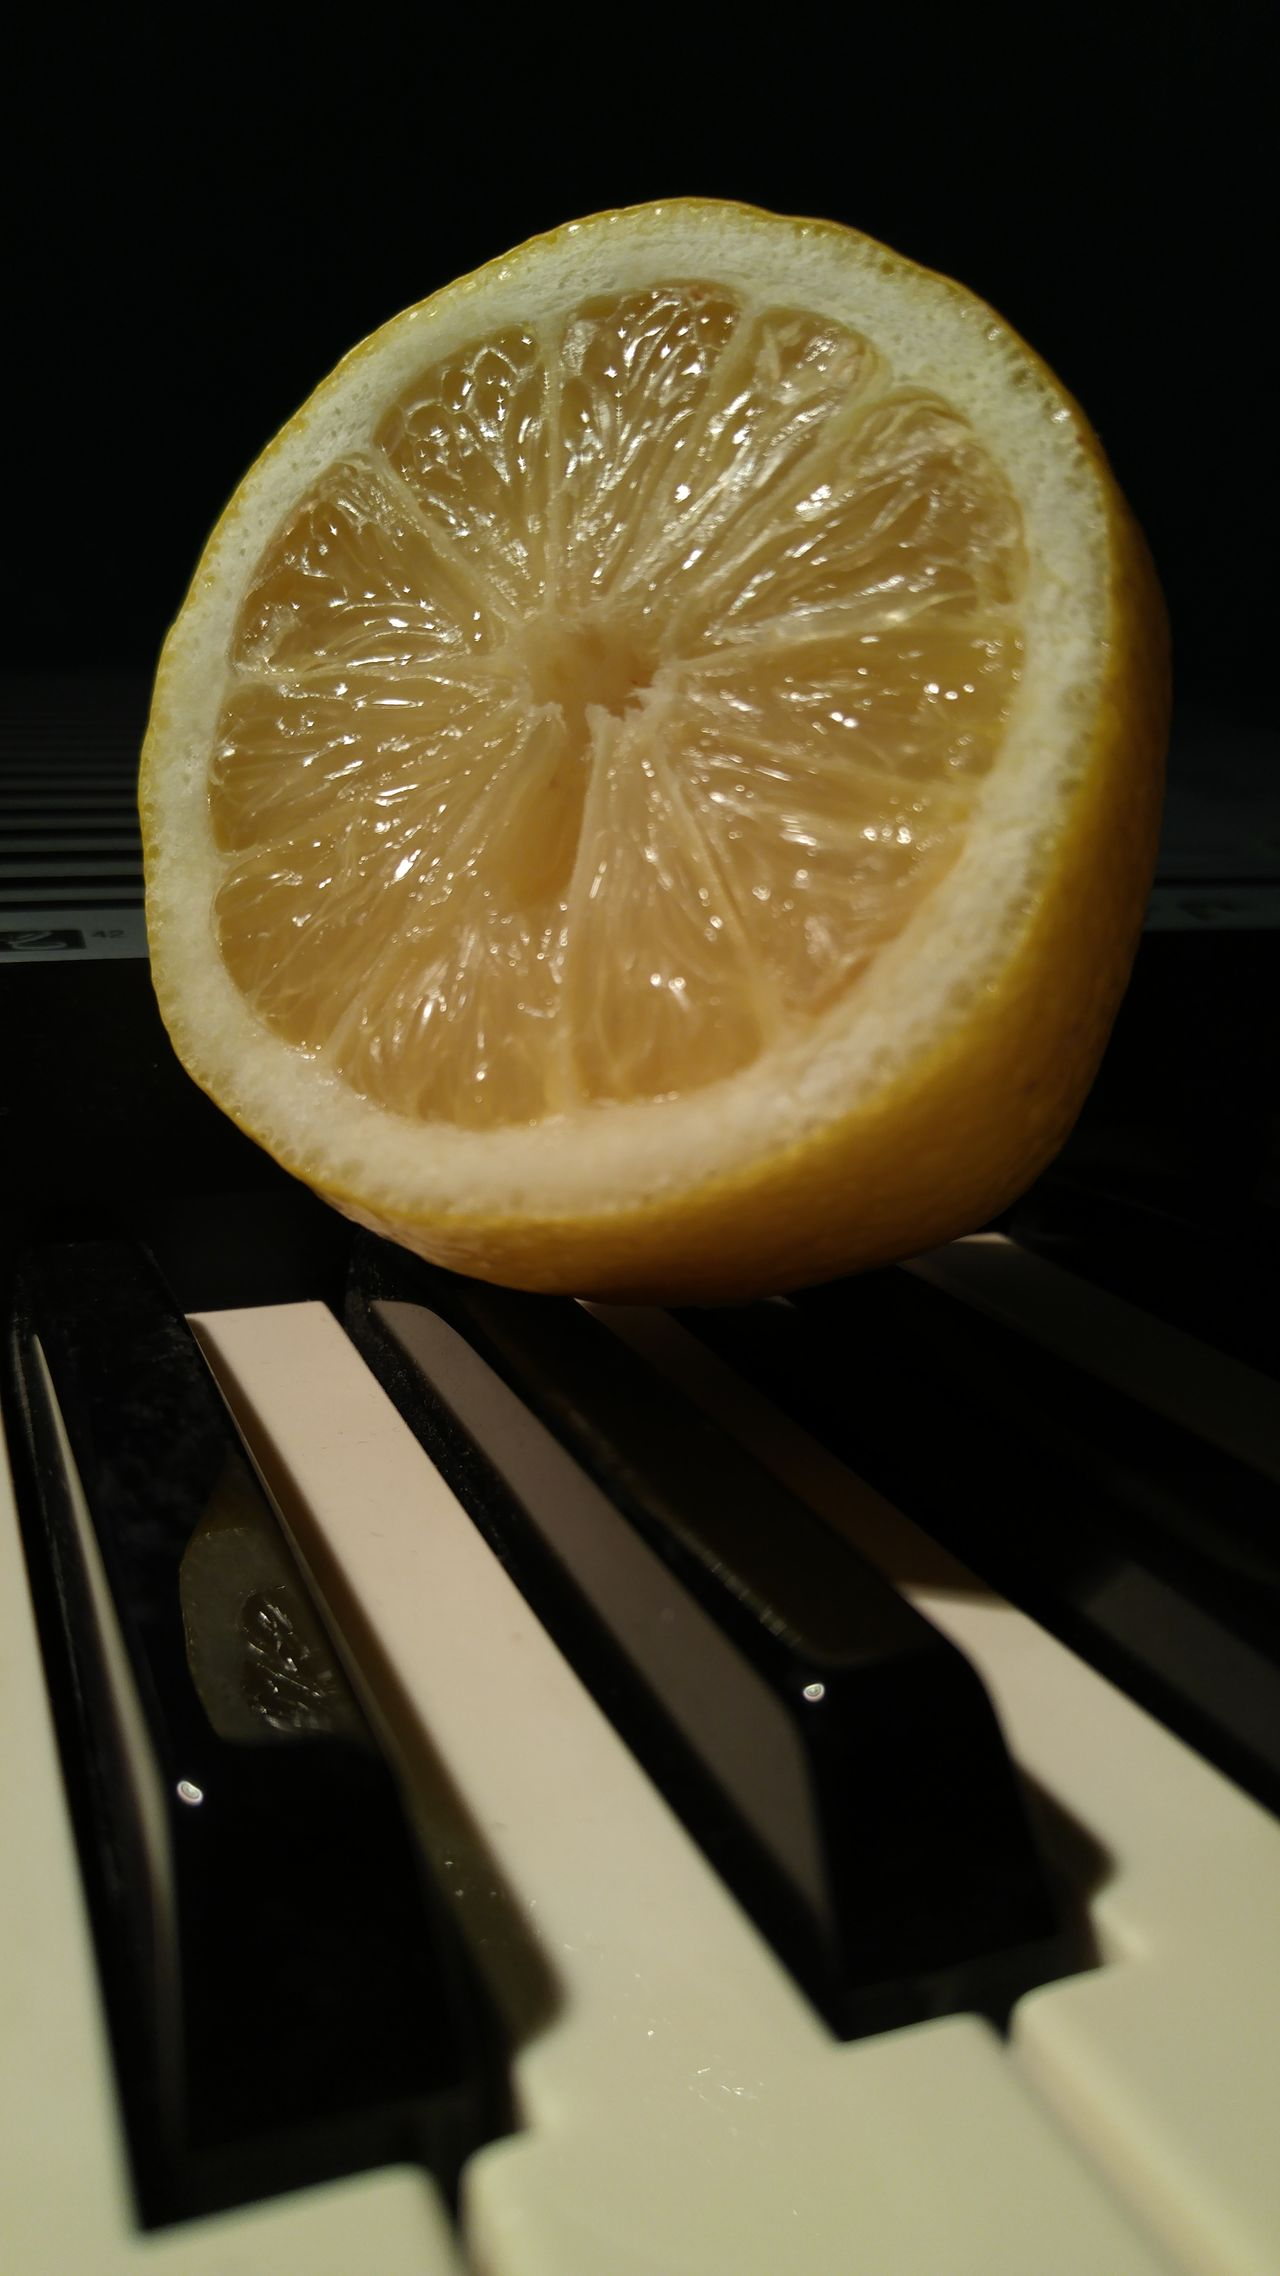 On a sour note. Sliced lemon higjlighted on piano keys. Fruit Citrus Fruit Lemon SLICE Freshness Healthy Eating Indoors  Food Close-up Black Background Sour Taste No People Food And Drink Yellow Piano Keys Yellow Blackandwhite Sliced Lemon Rind Juicy Citrus Fruit